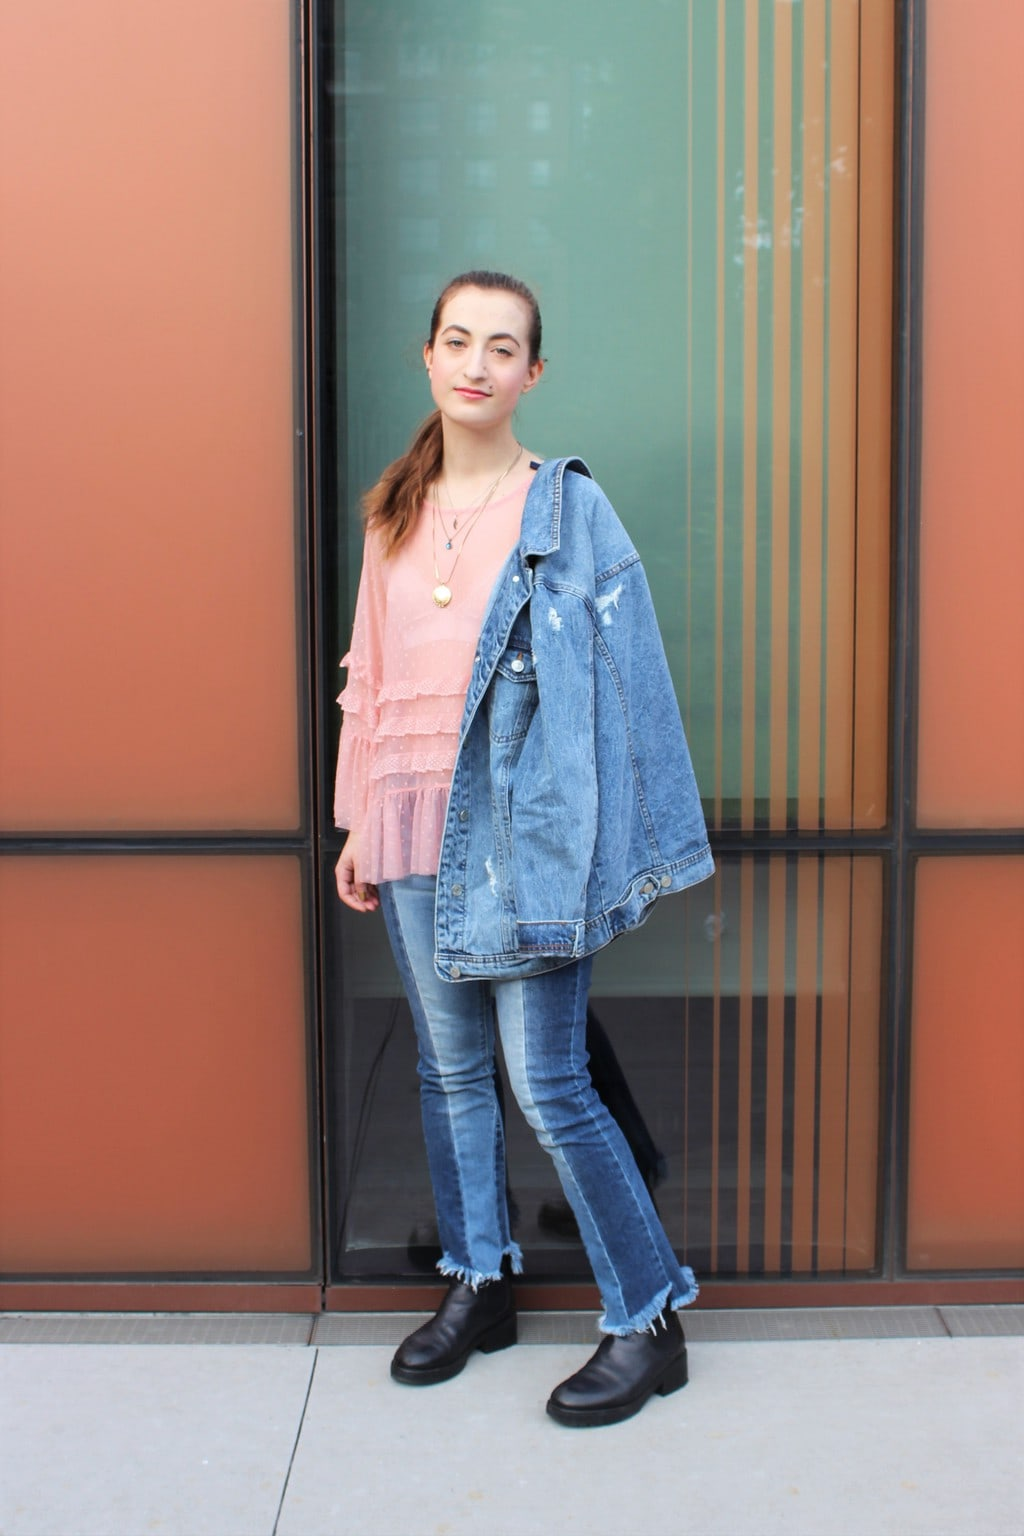 Barnard College at Columbia University student Francesca wears the perfect denim on denim outfit with a ruffled, sheer pink blouse with a white lace bralette underneath, patchwork raw-edge denim jeans, and an oversized light-wash denim jacket.